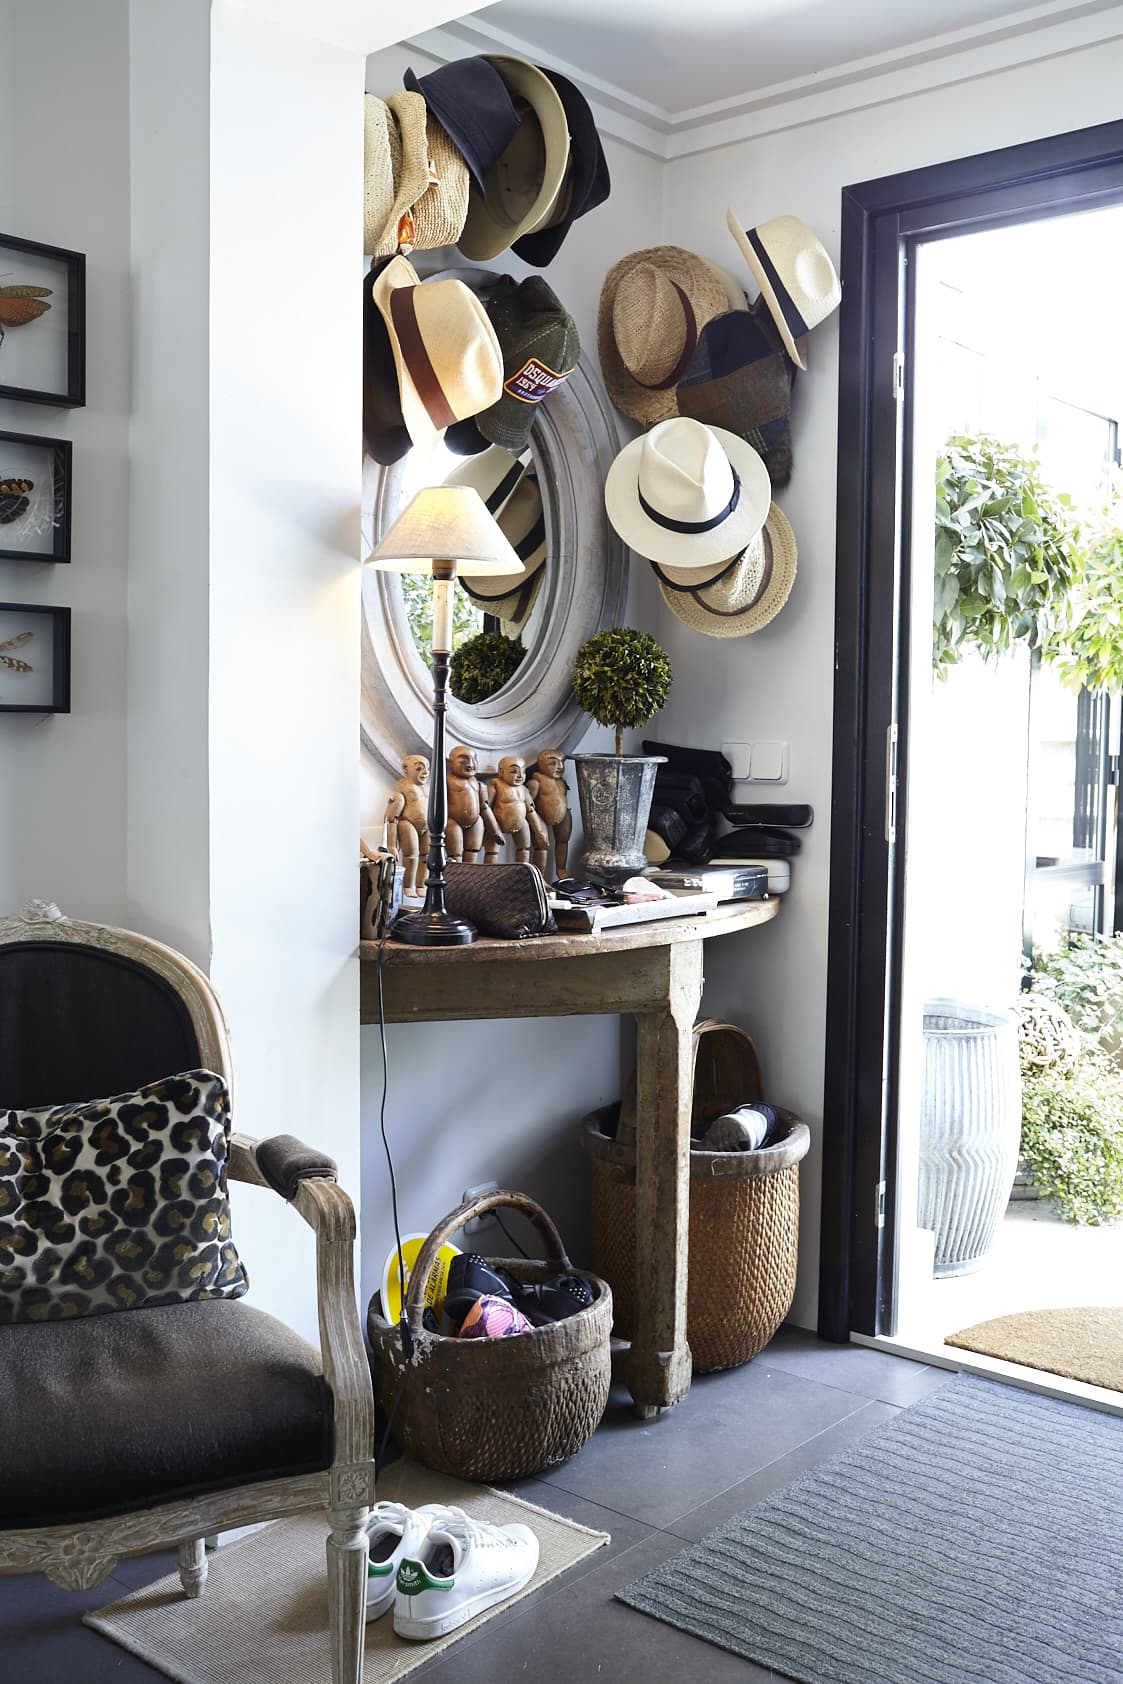 The first thing you see as you enter the front hallway is an old wooden table that Anna got at an auction. The hat collection on the wall is as decorative as practical.